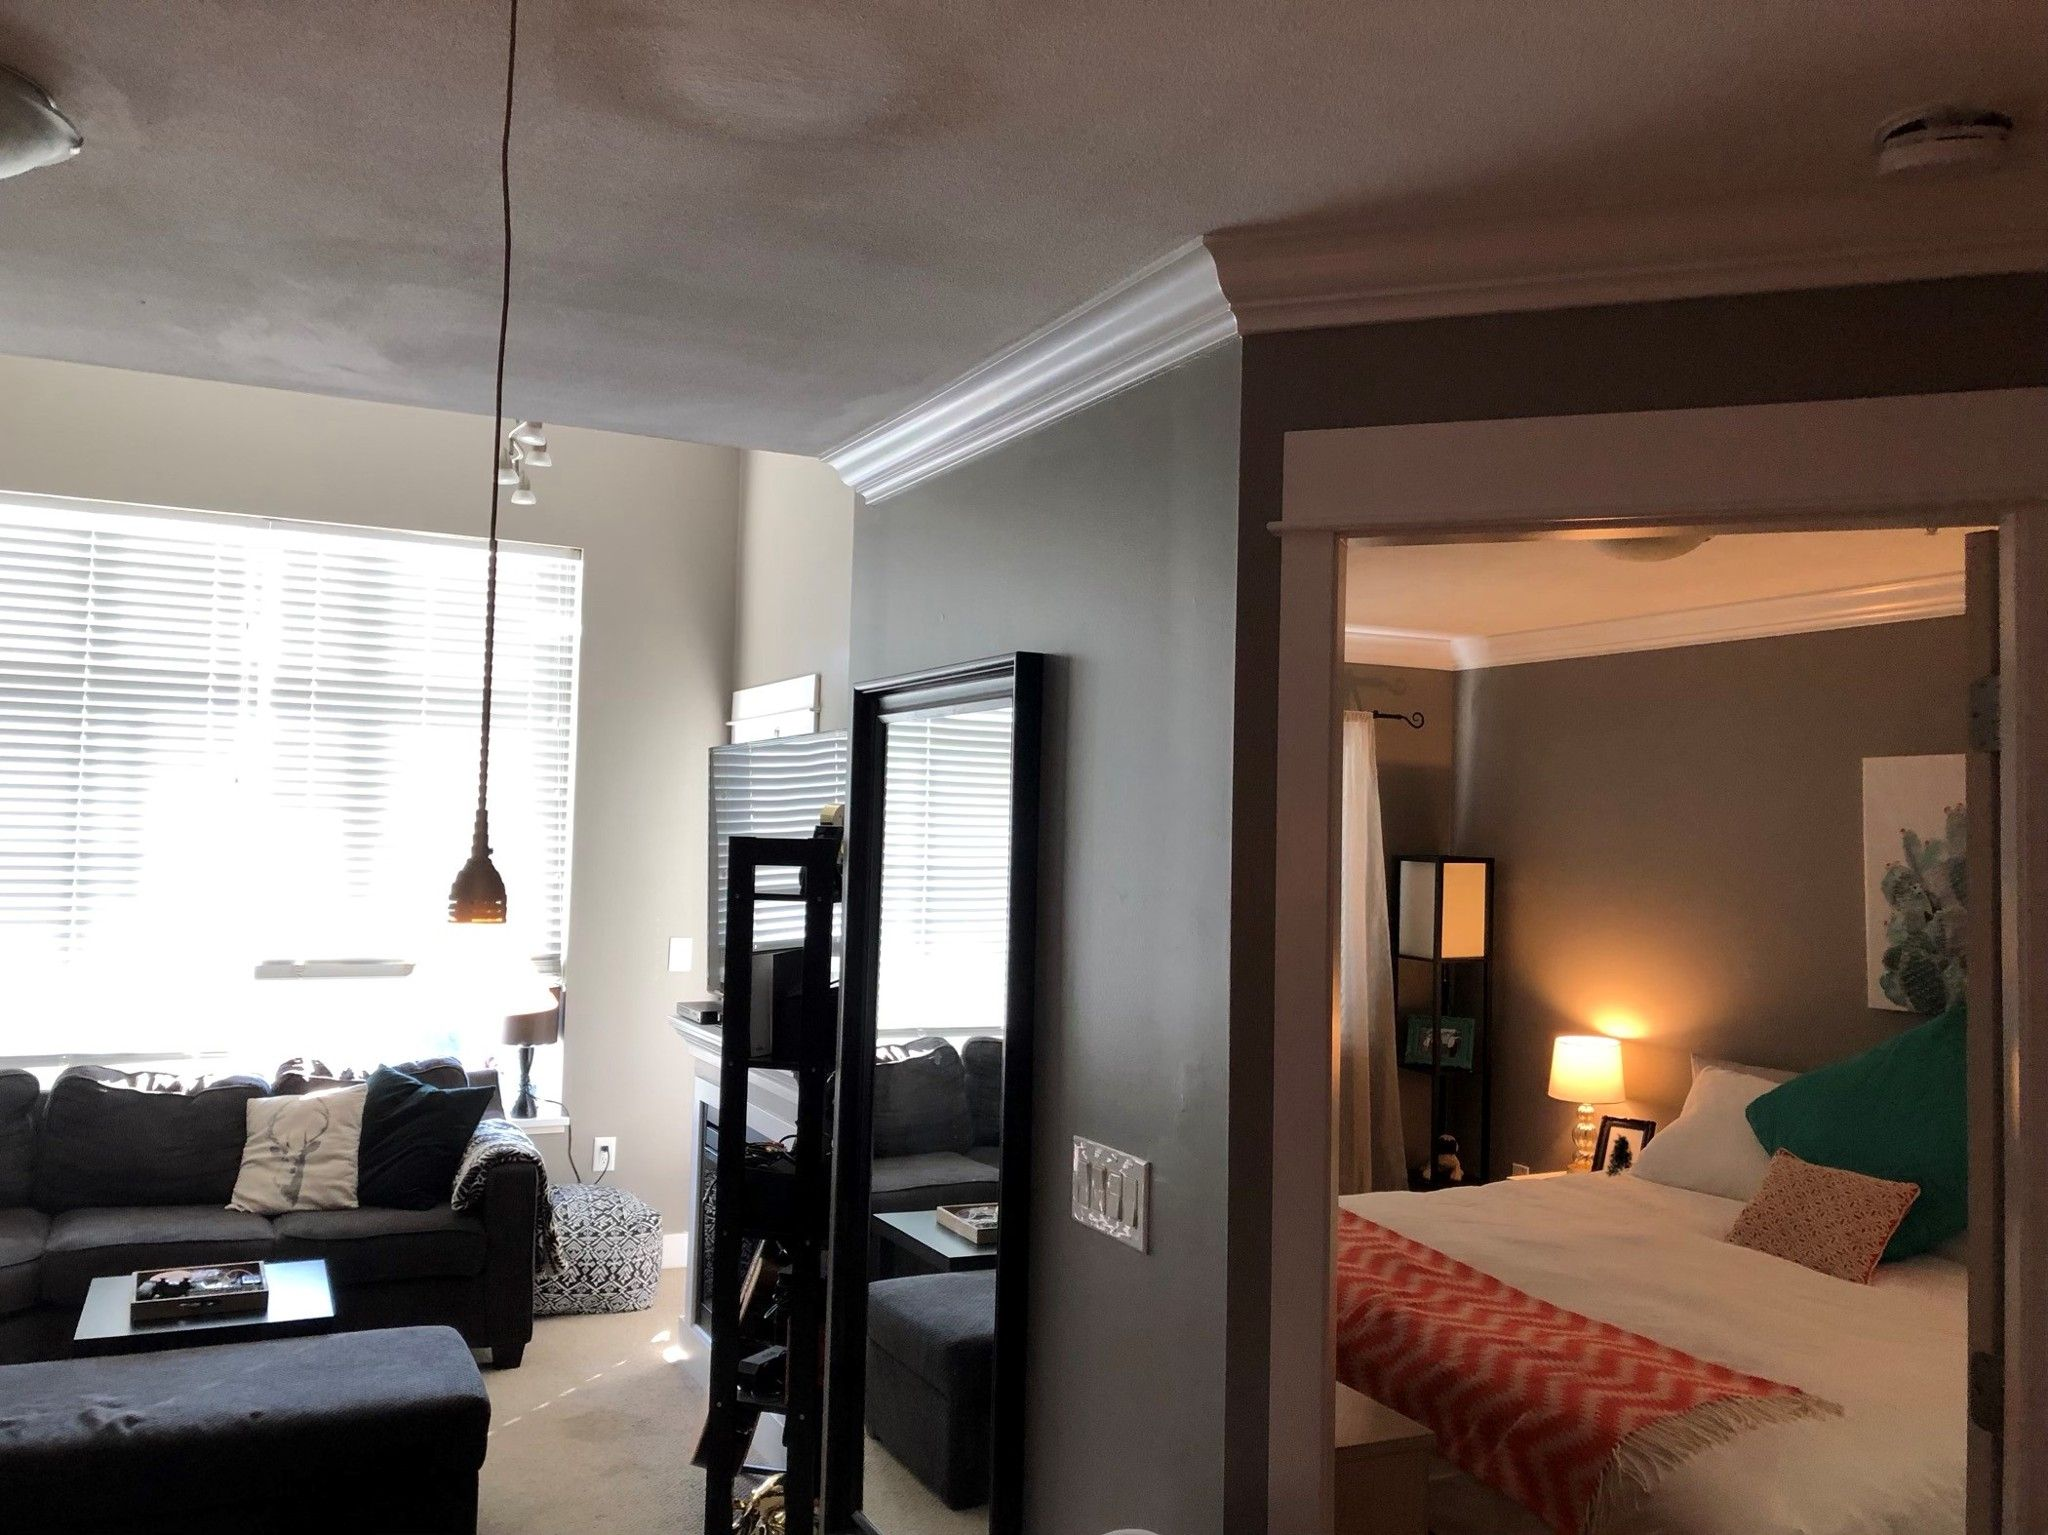 Photo 9: Photos: #405 2515 Park Dr. in Abbotsford: Central Abbotsford Condo for rent